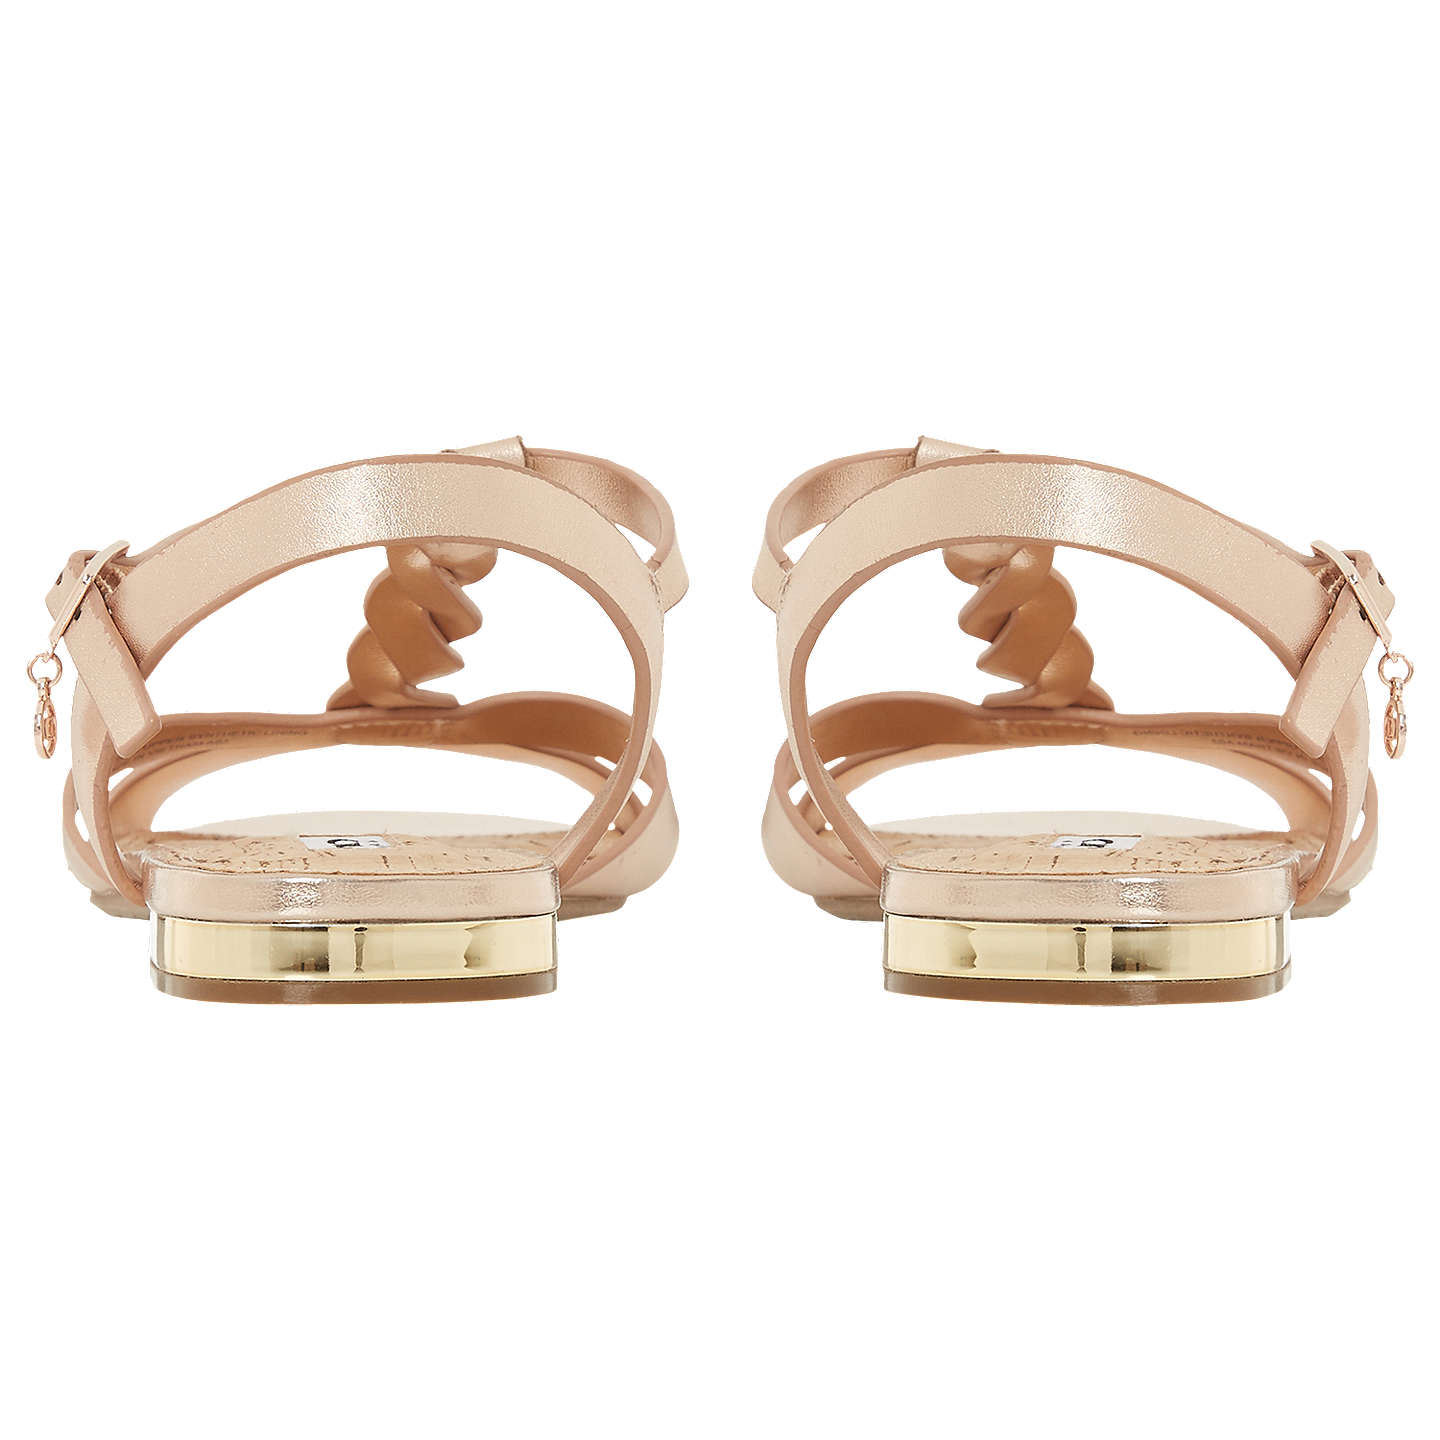 BuyDune Lottery Plait Detail Sandals, Rose Gold Leather, 3 Online at johnlewis.com